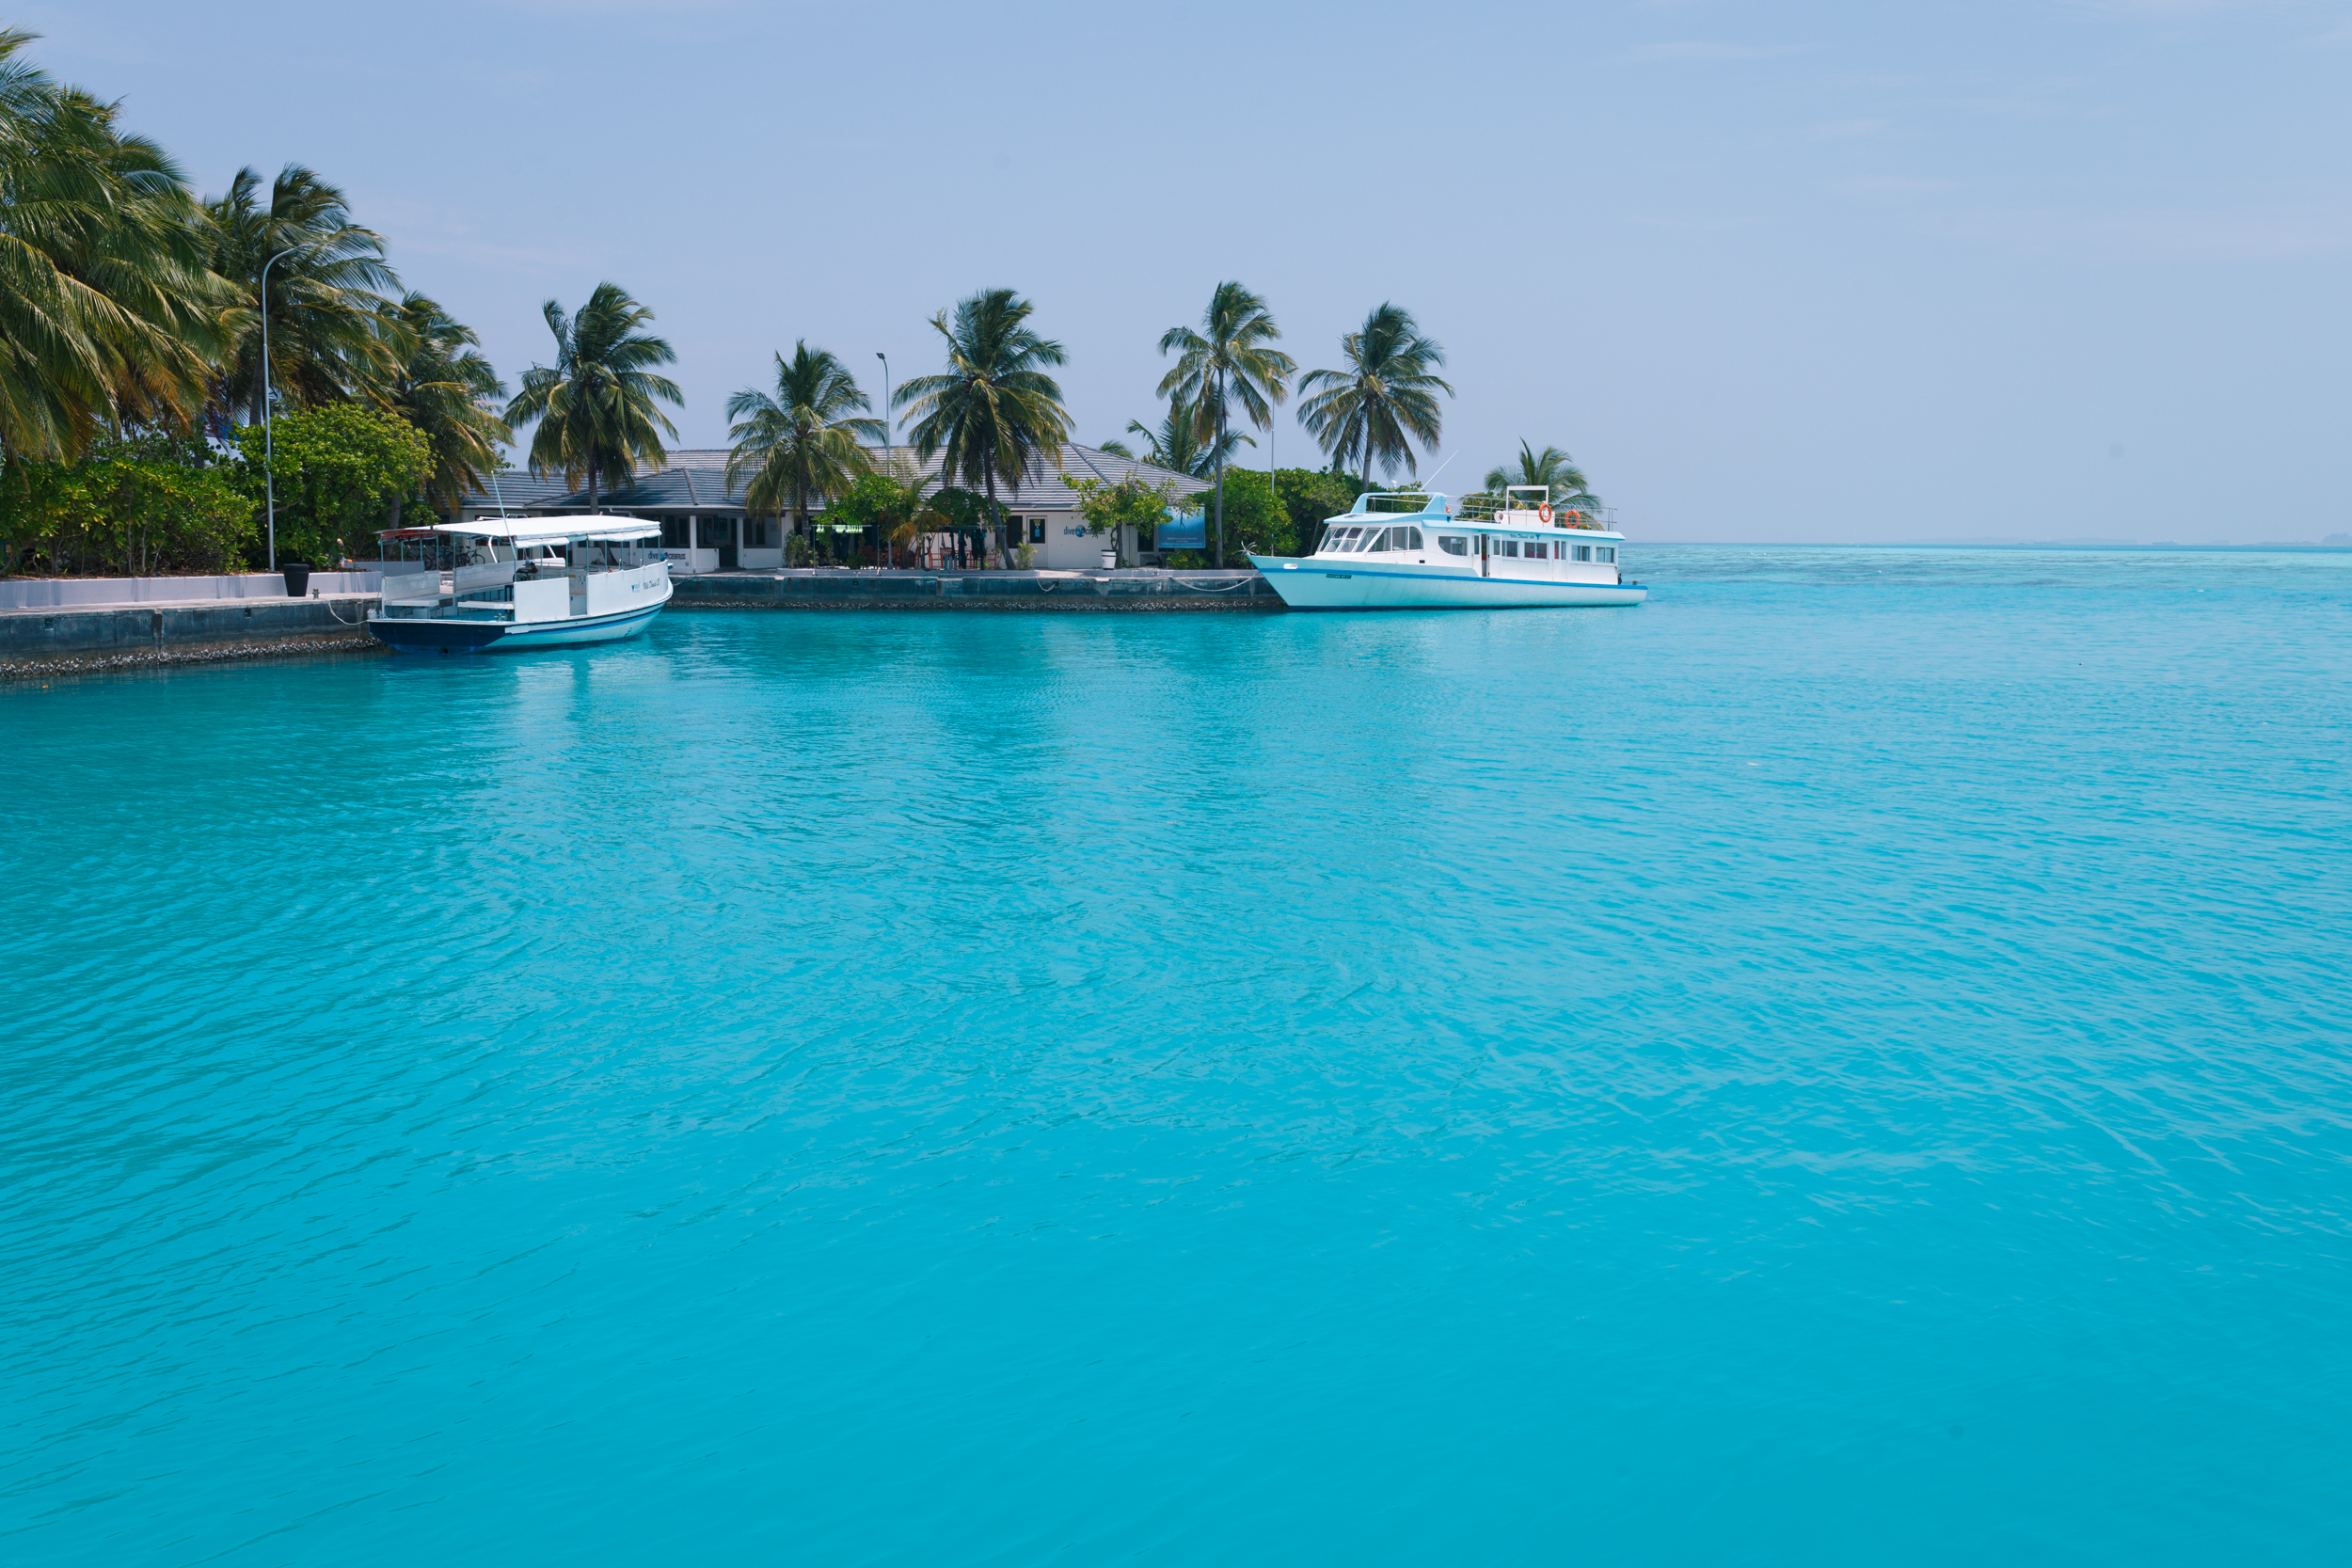 The Blues of the Maldives